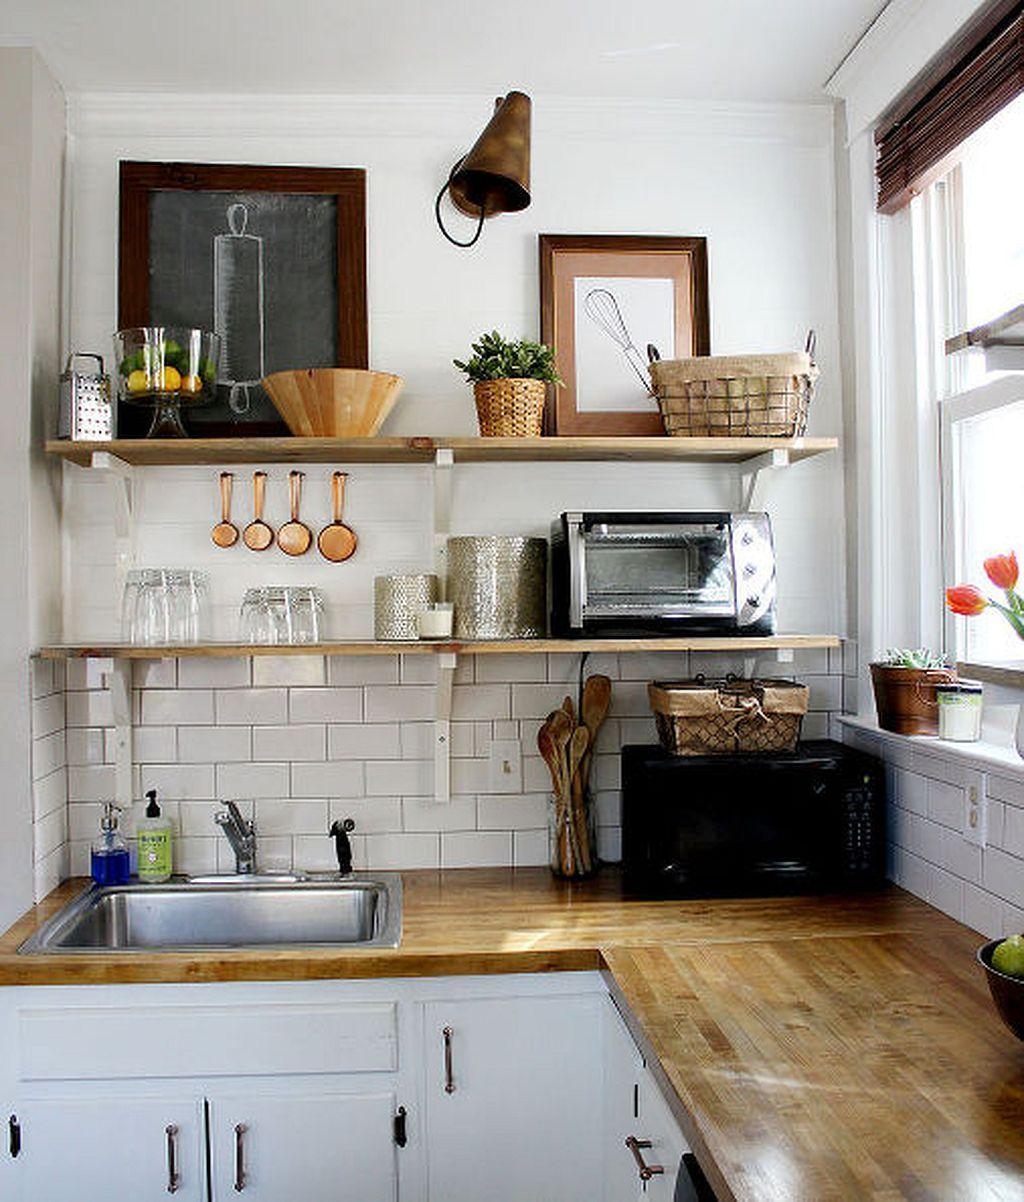 Diy Home Improvement On A Budget Kitchen Ideas Https Www